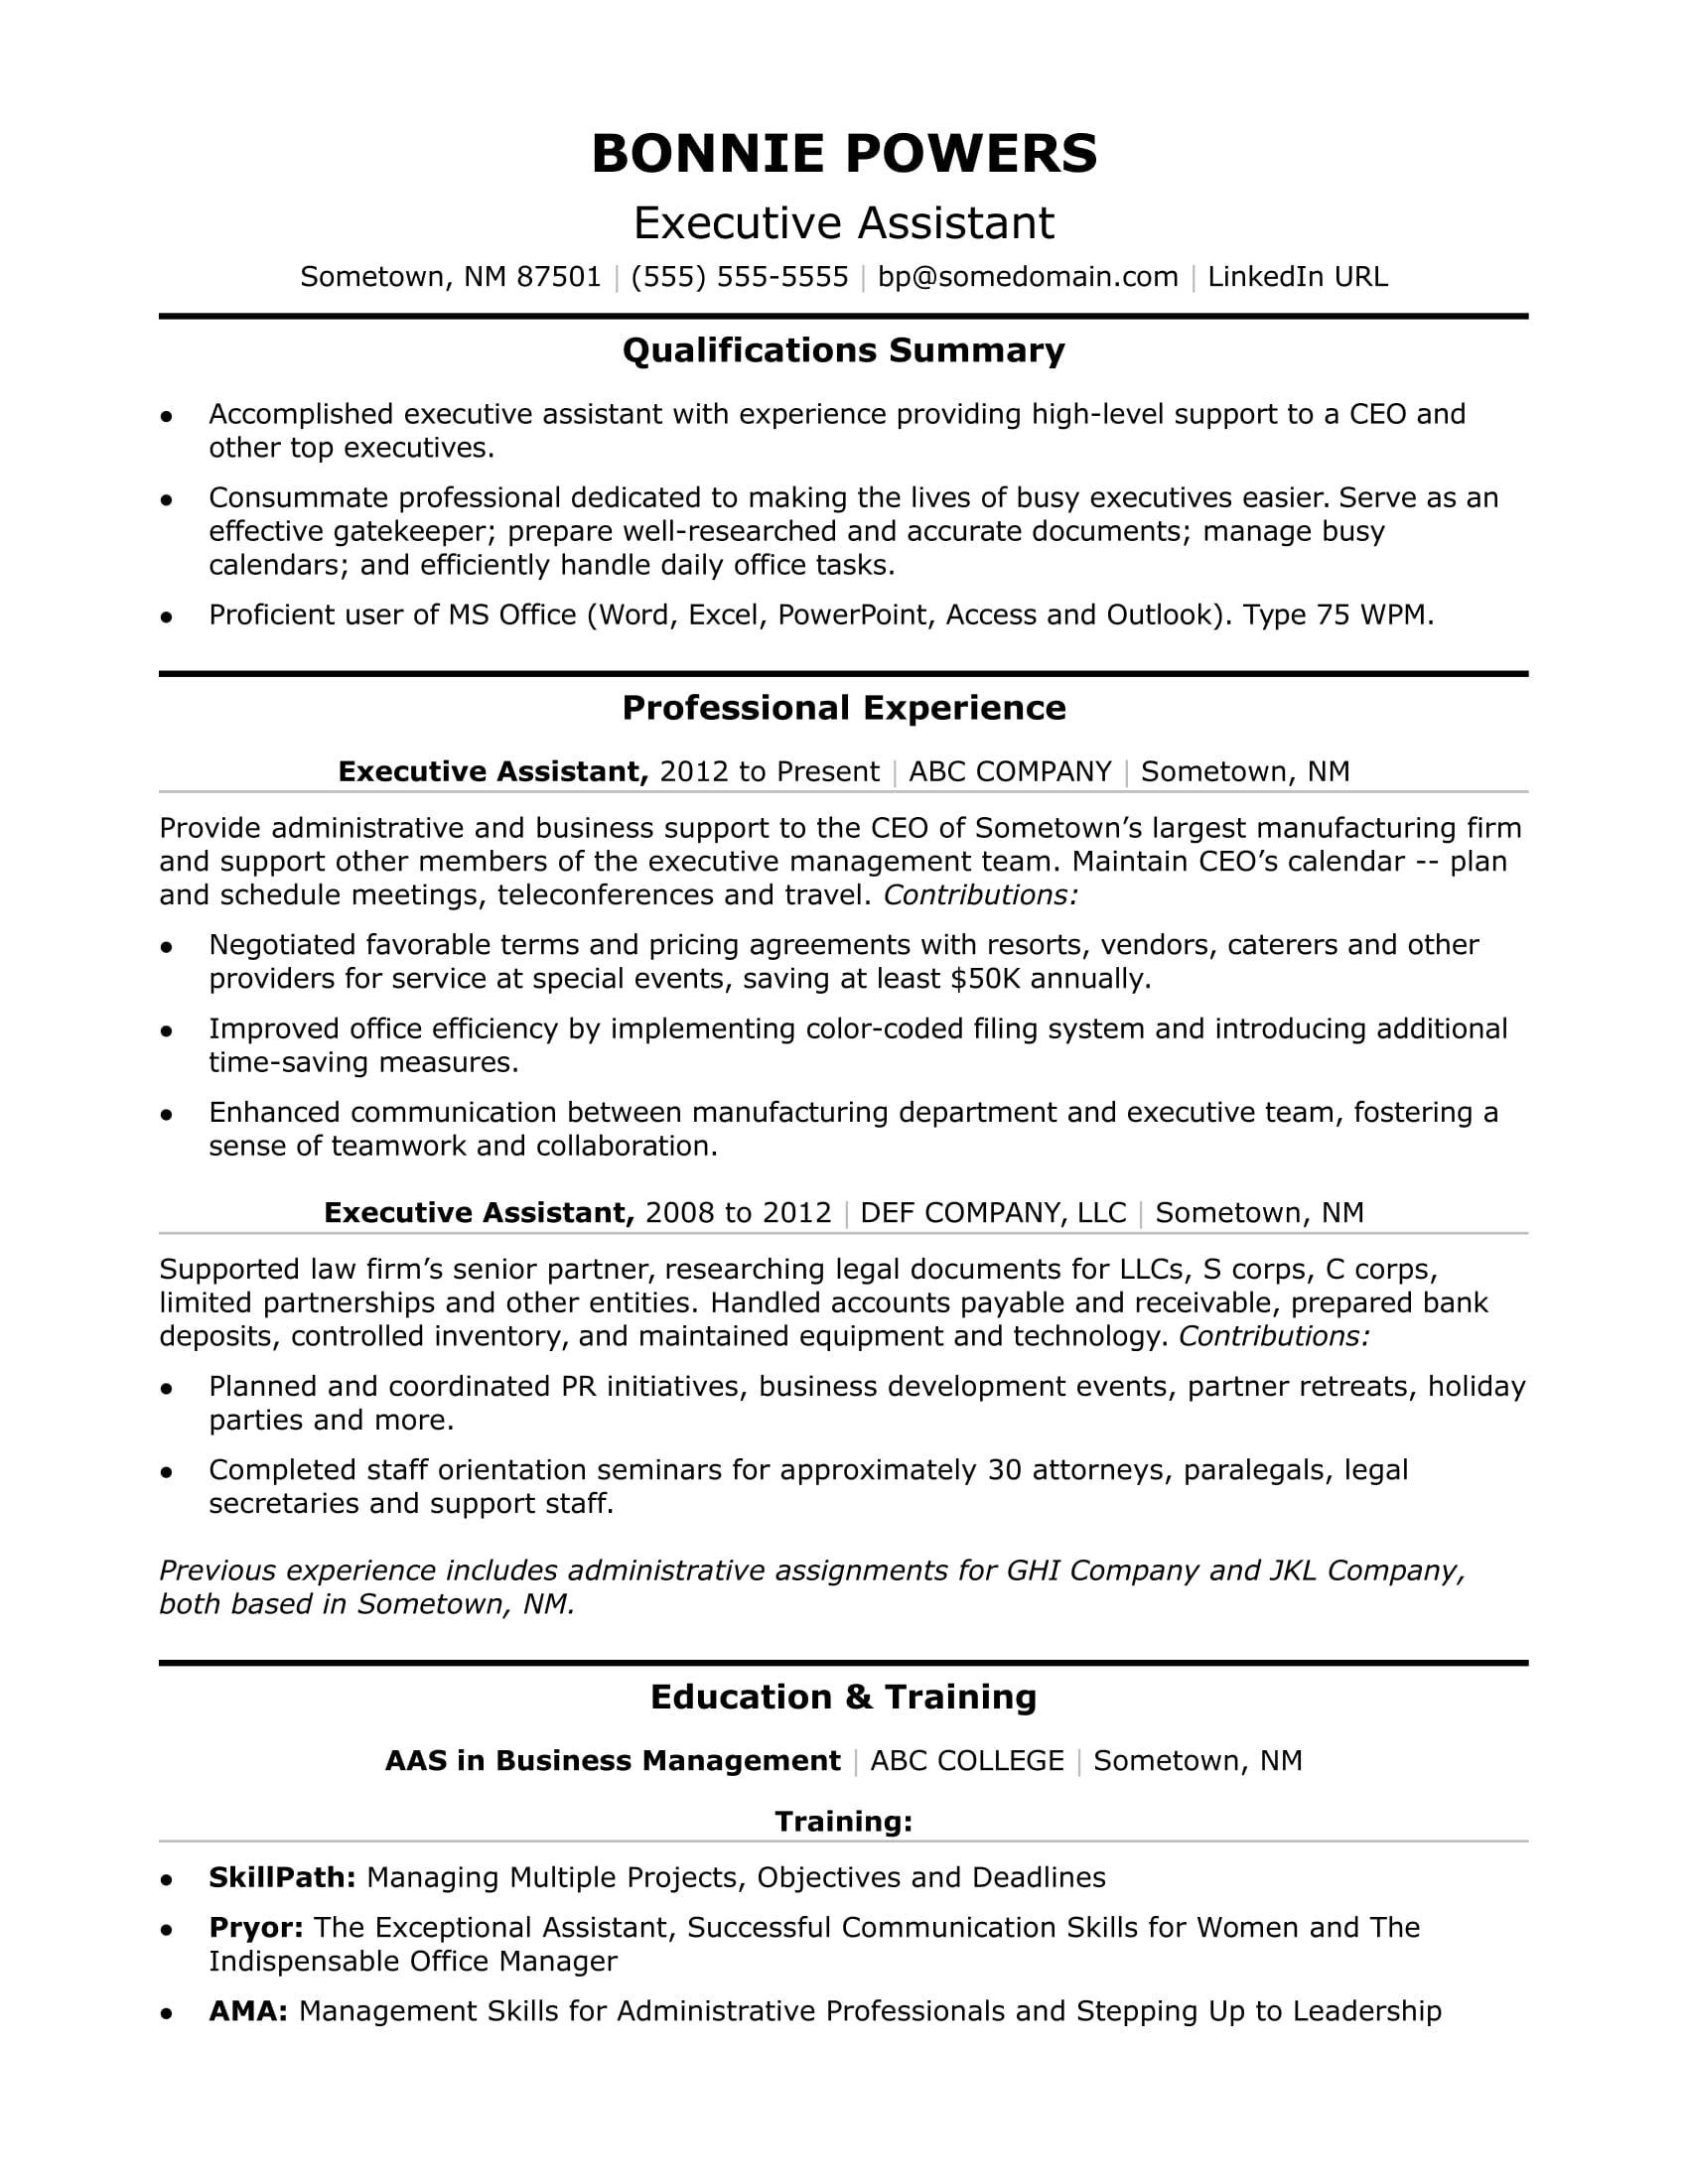 This Executive Assistant Resume Sample Shows How You Can Convey To